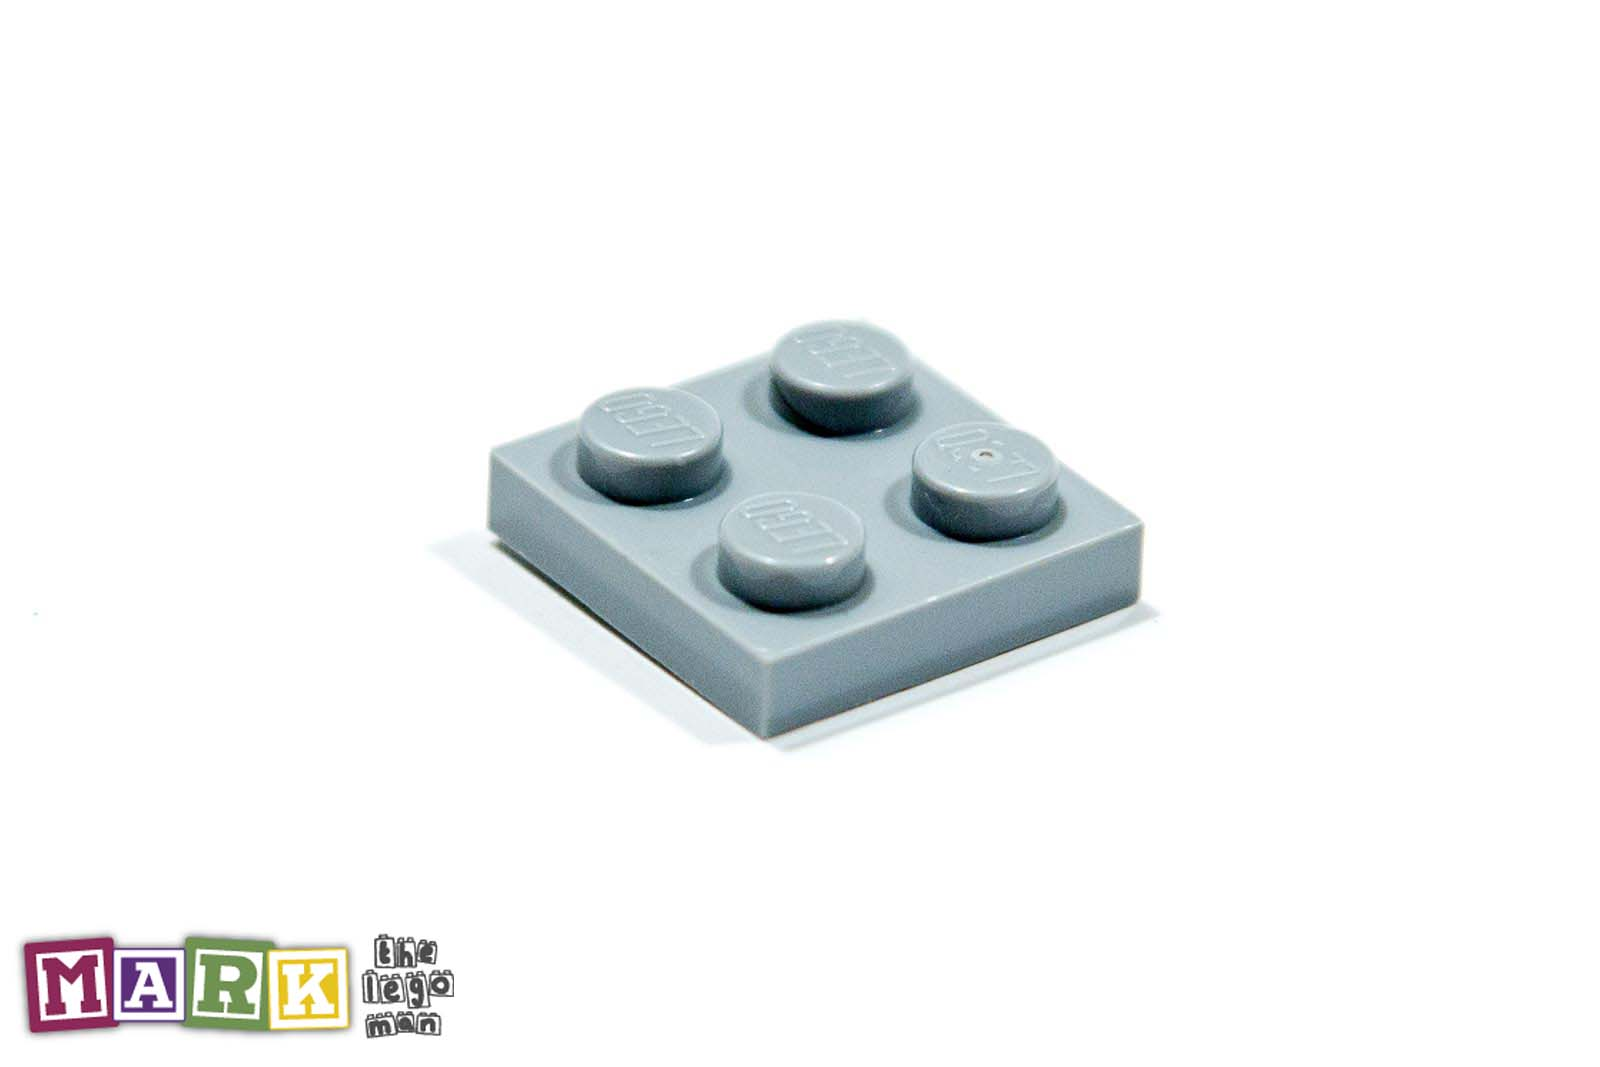 Lego 4211397 3022 1x Light Blueish Grey Md Stone Medium Standard Grey 2x2 Plate